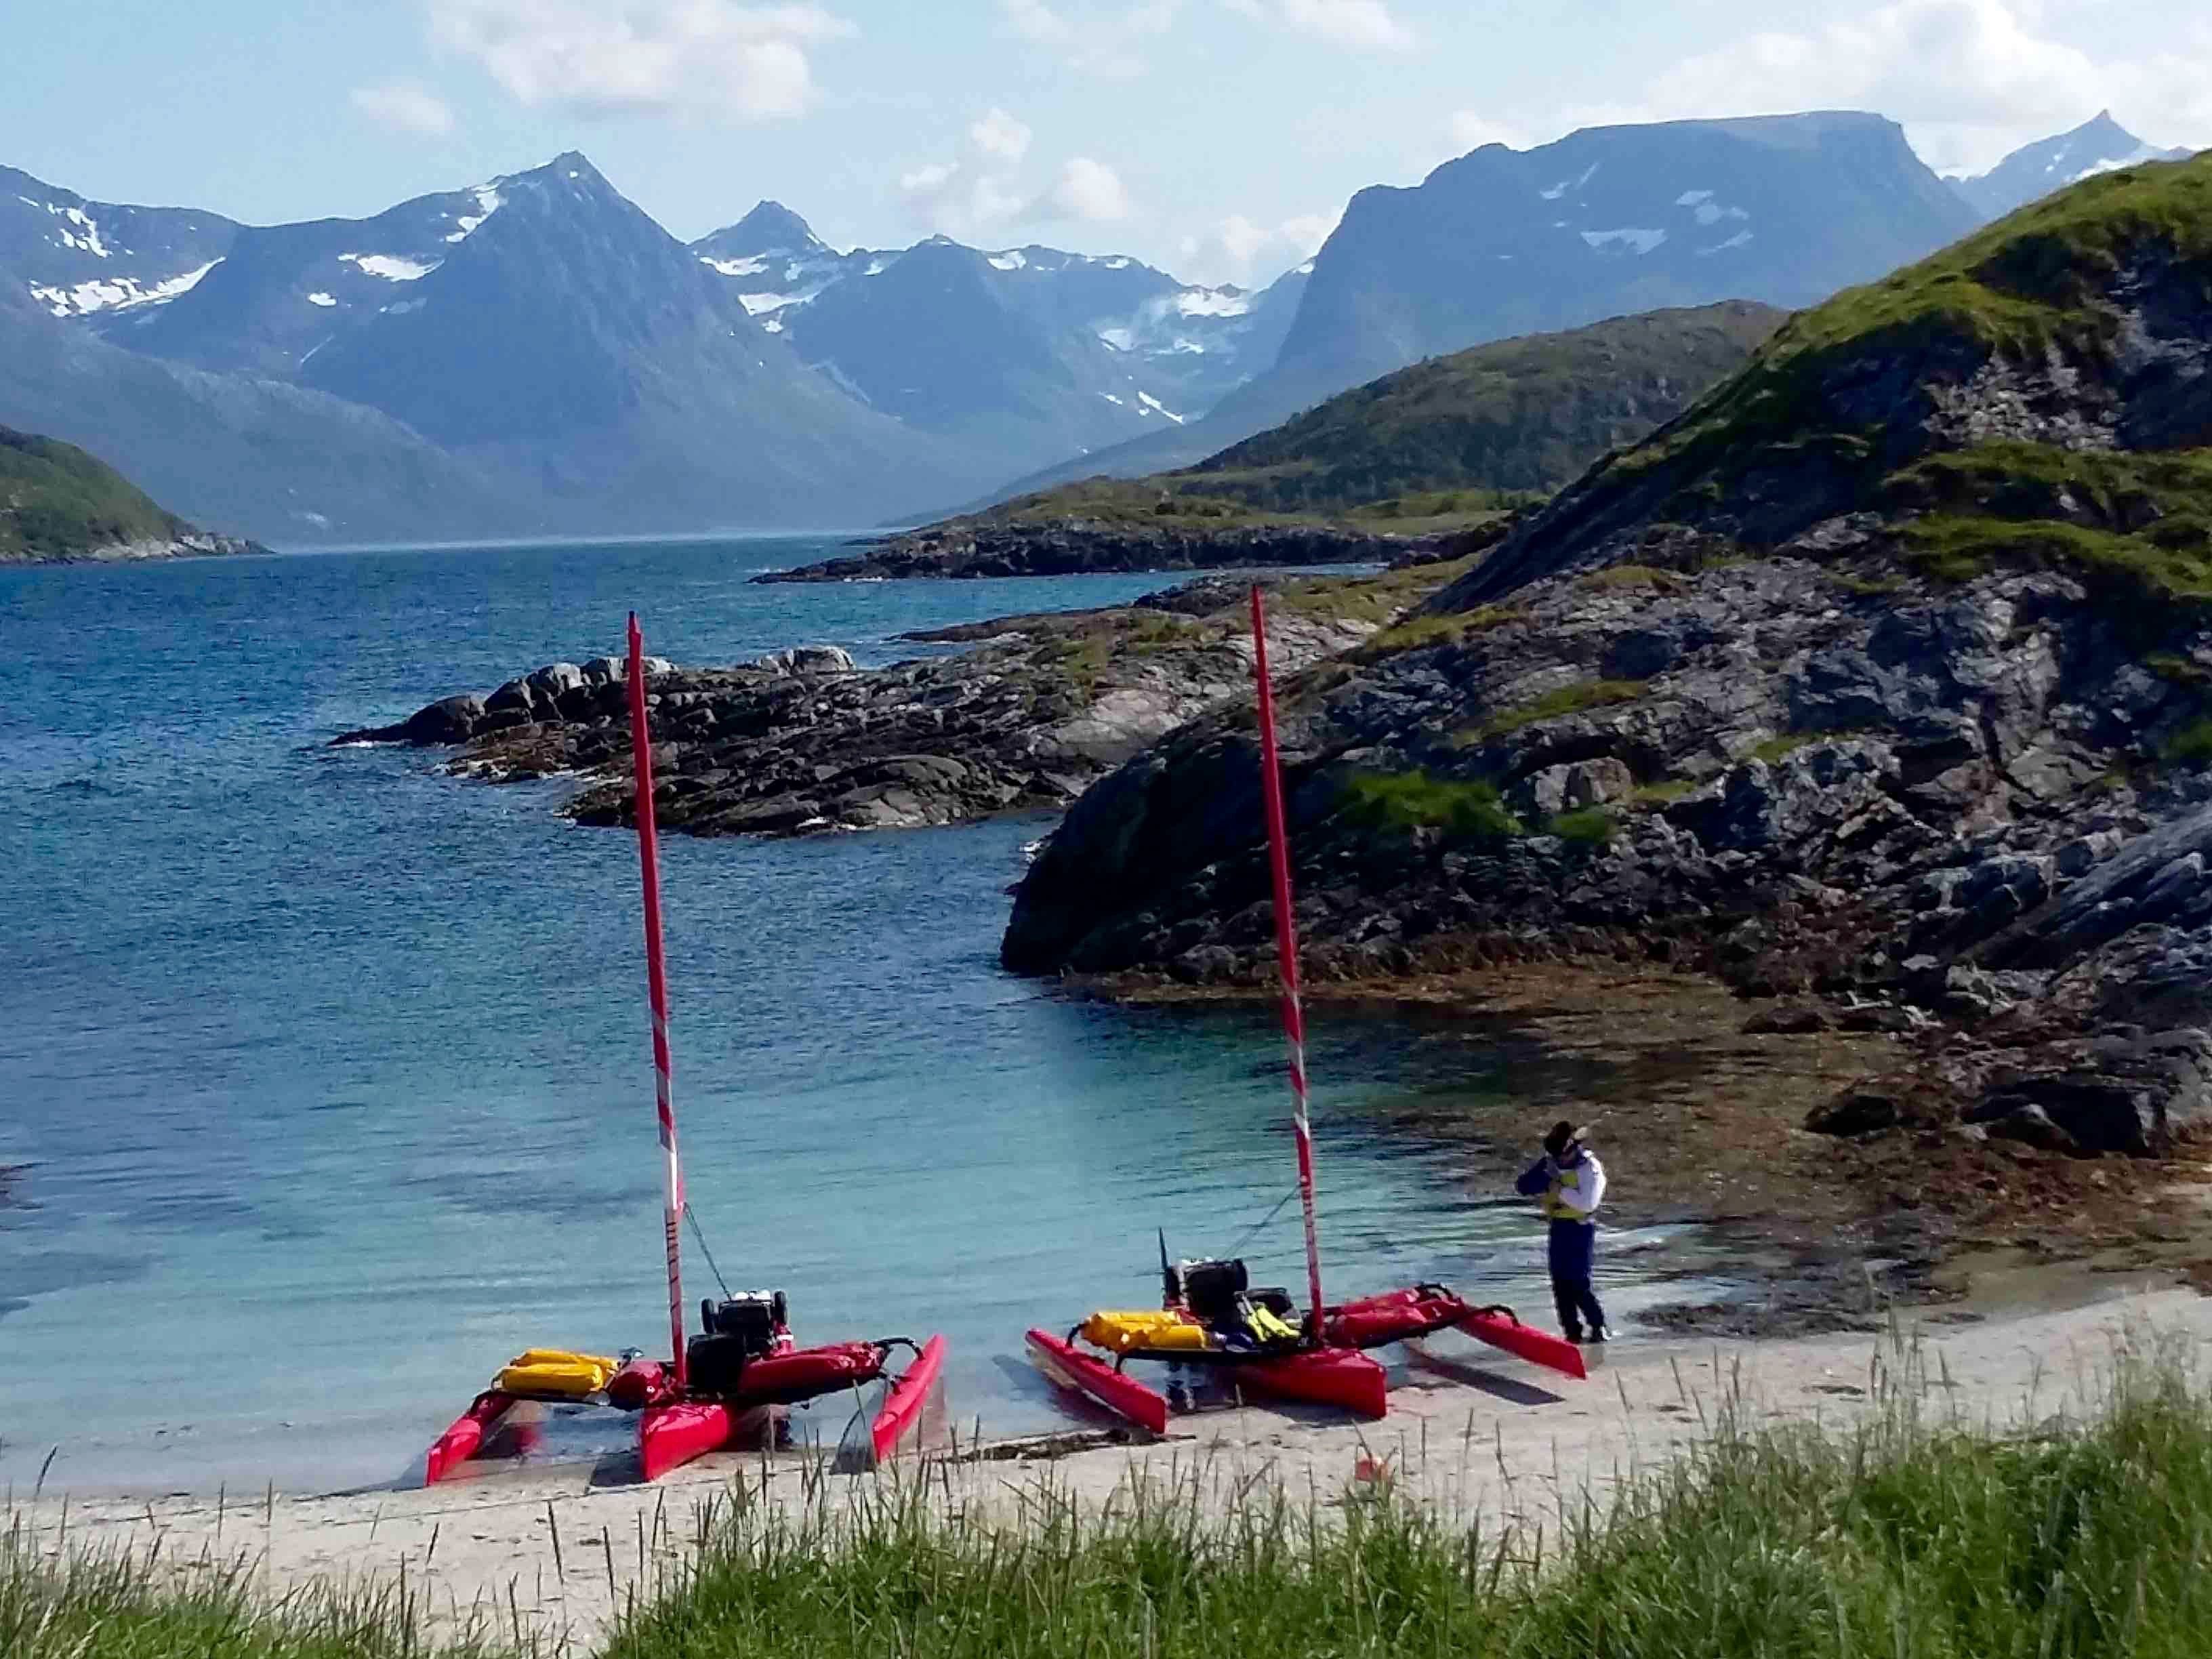 Yann Salagnon,  © 69 Nord Outdoor Center, Week-end and short stay trip by sailing kayak off the beaten path – 69 Nord Sommarøy Outdoor Center